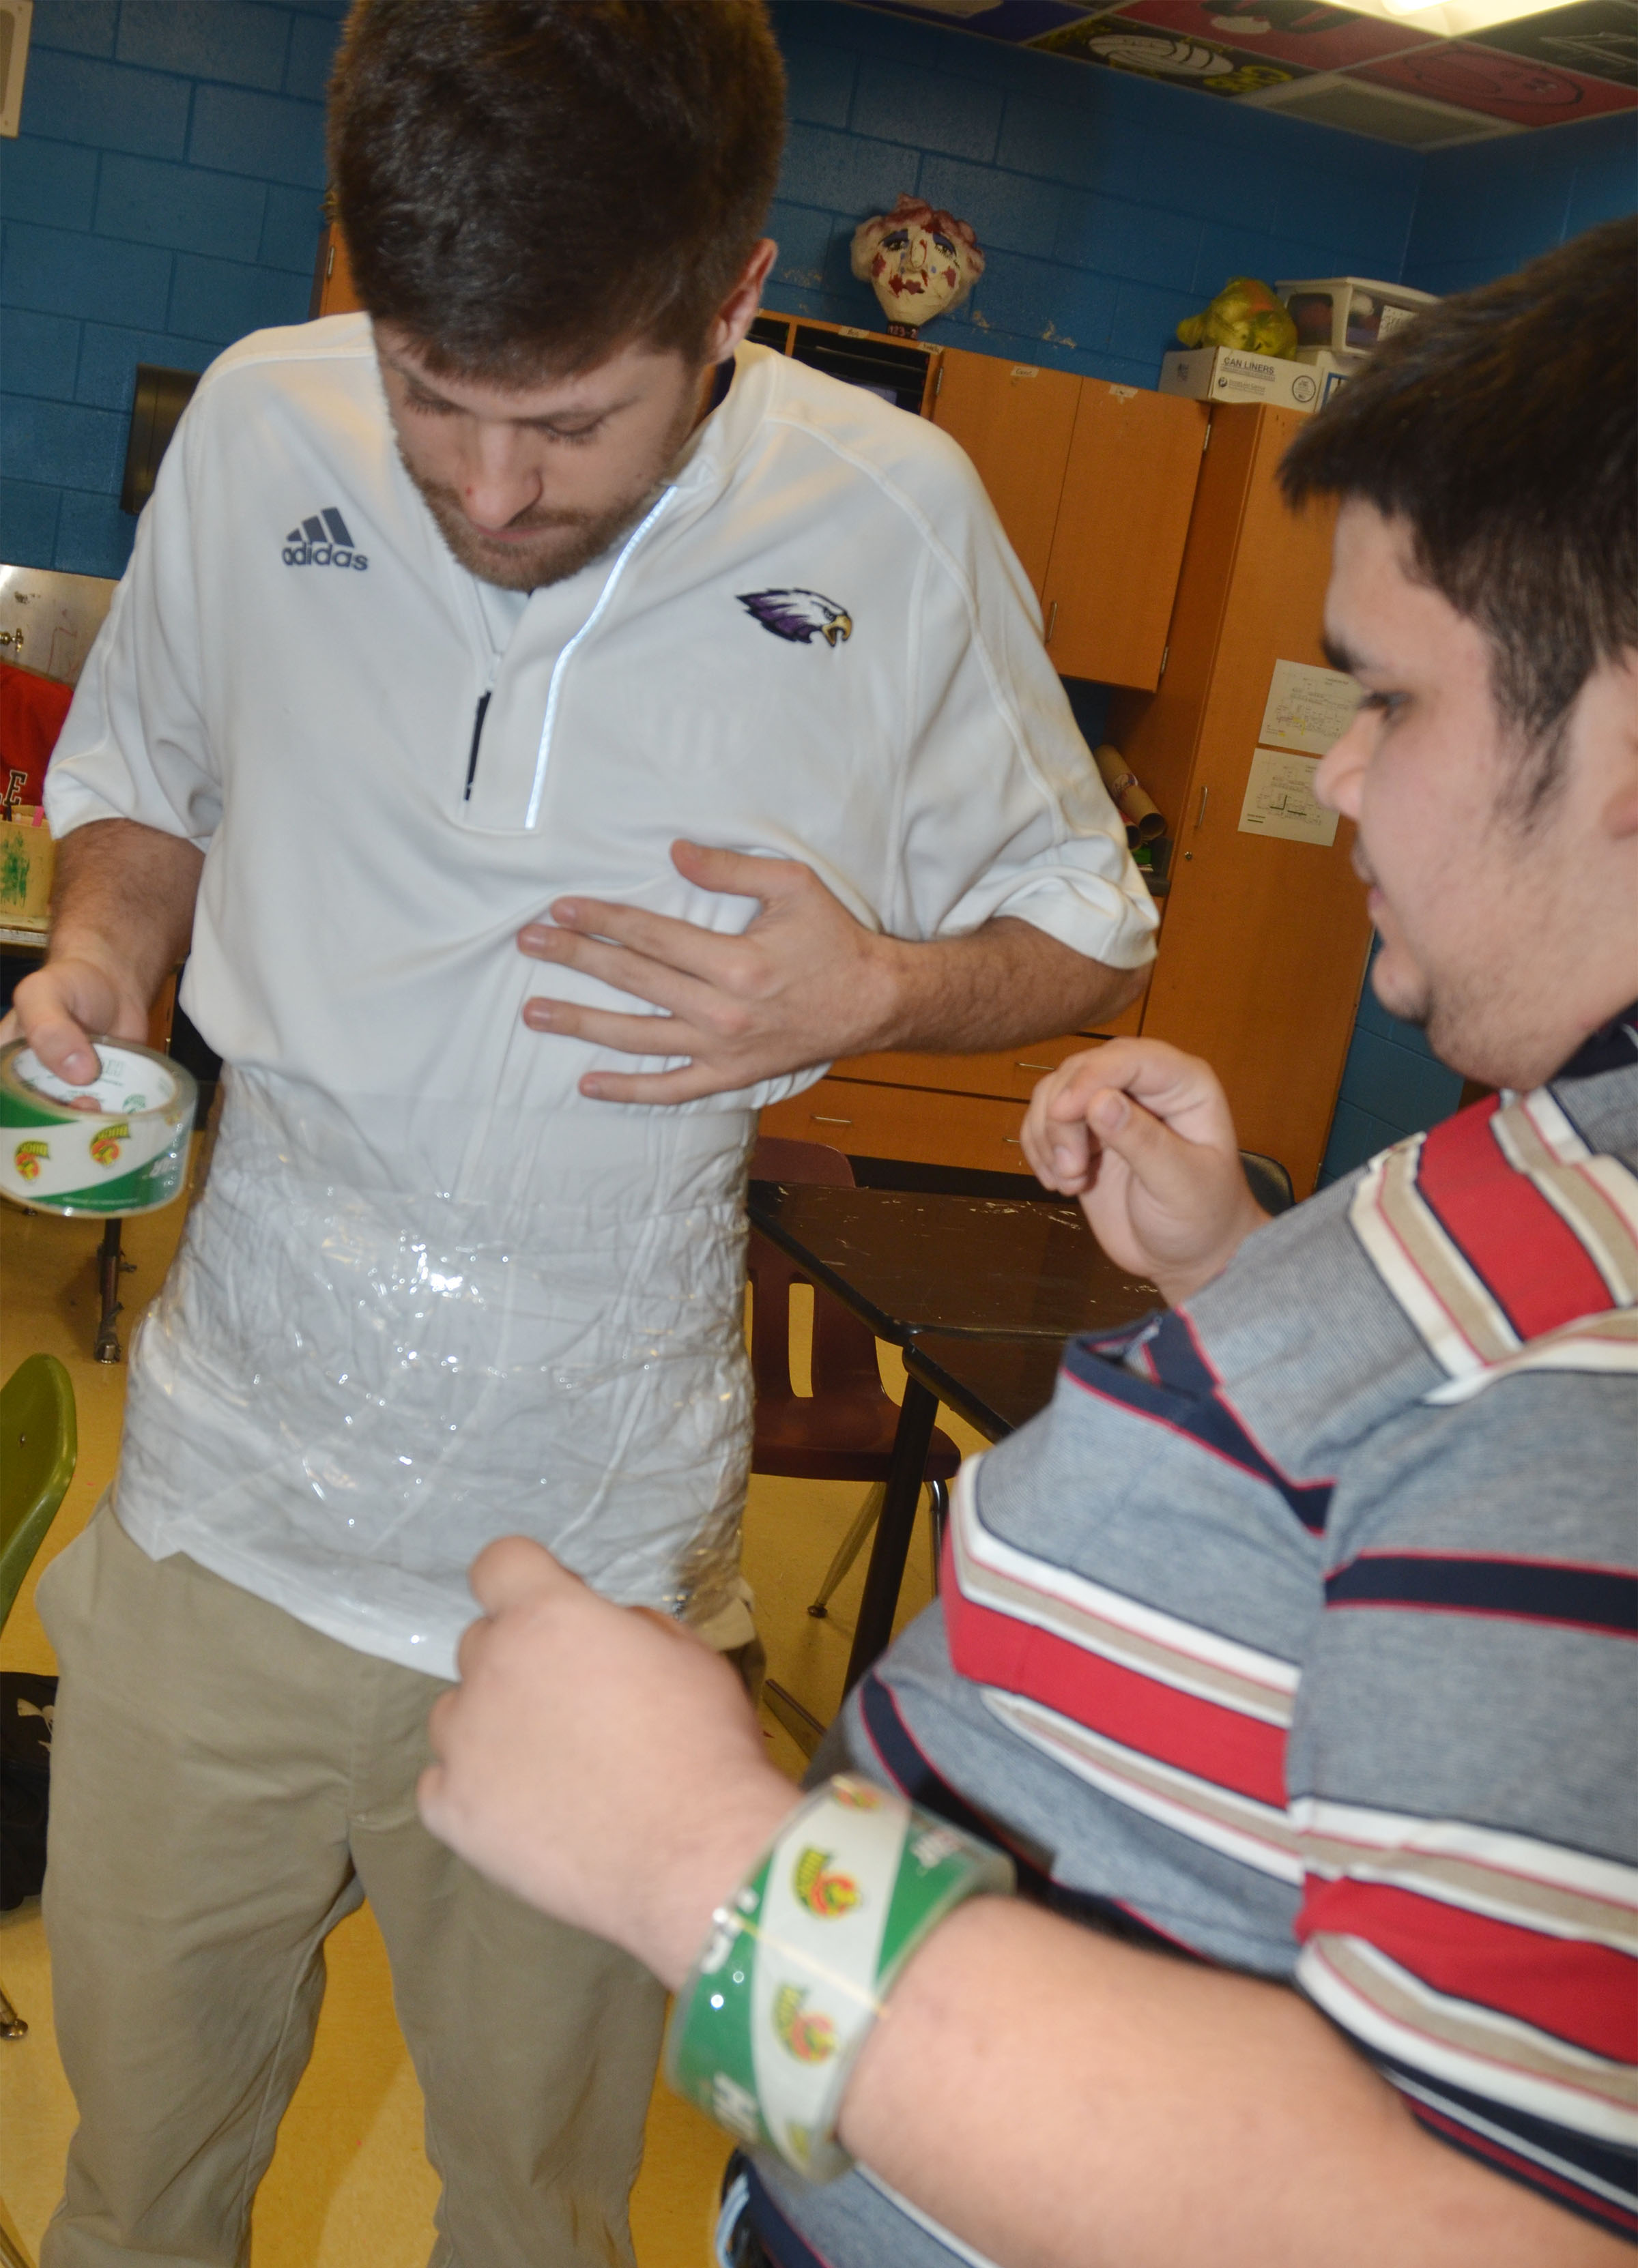 CHS instructional assistant Matthew Schmuck tapes his torso, with some help from CHS senior Robert Tungate.